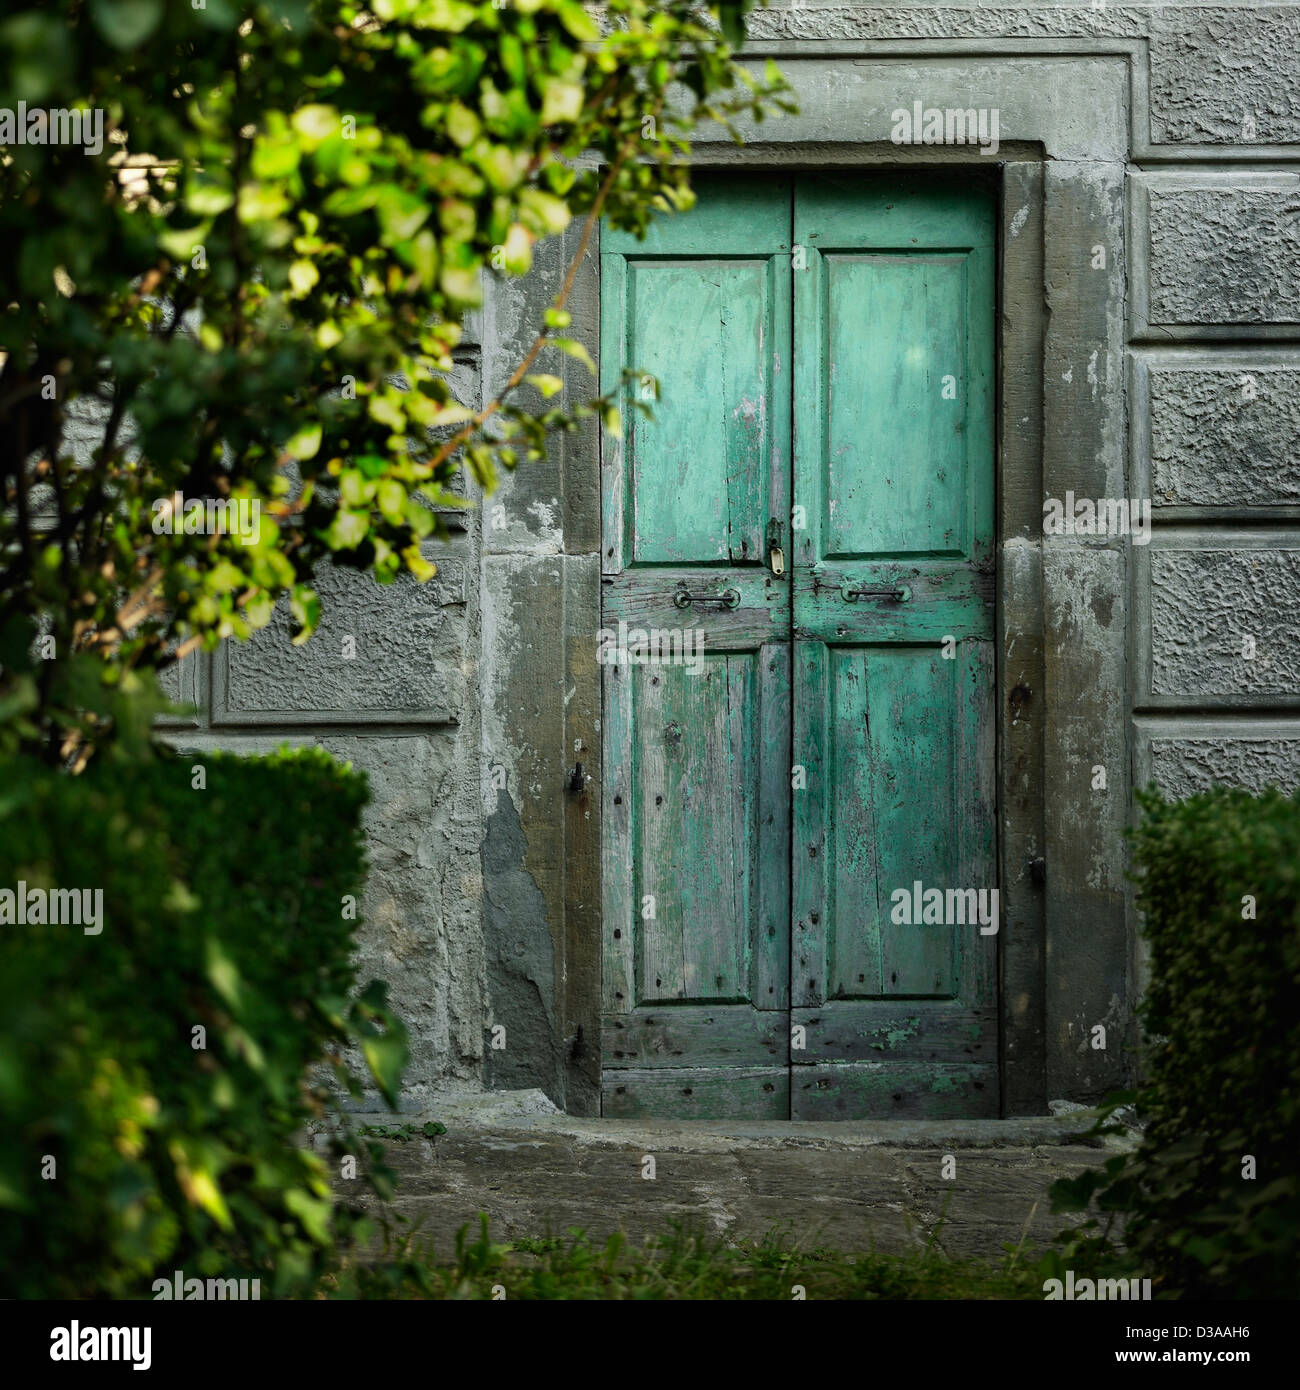 Old doors in concrete wall - Stock Image